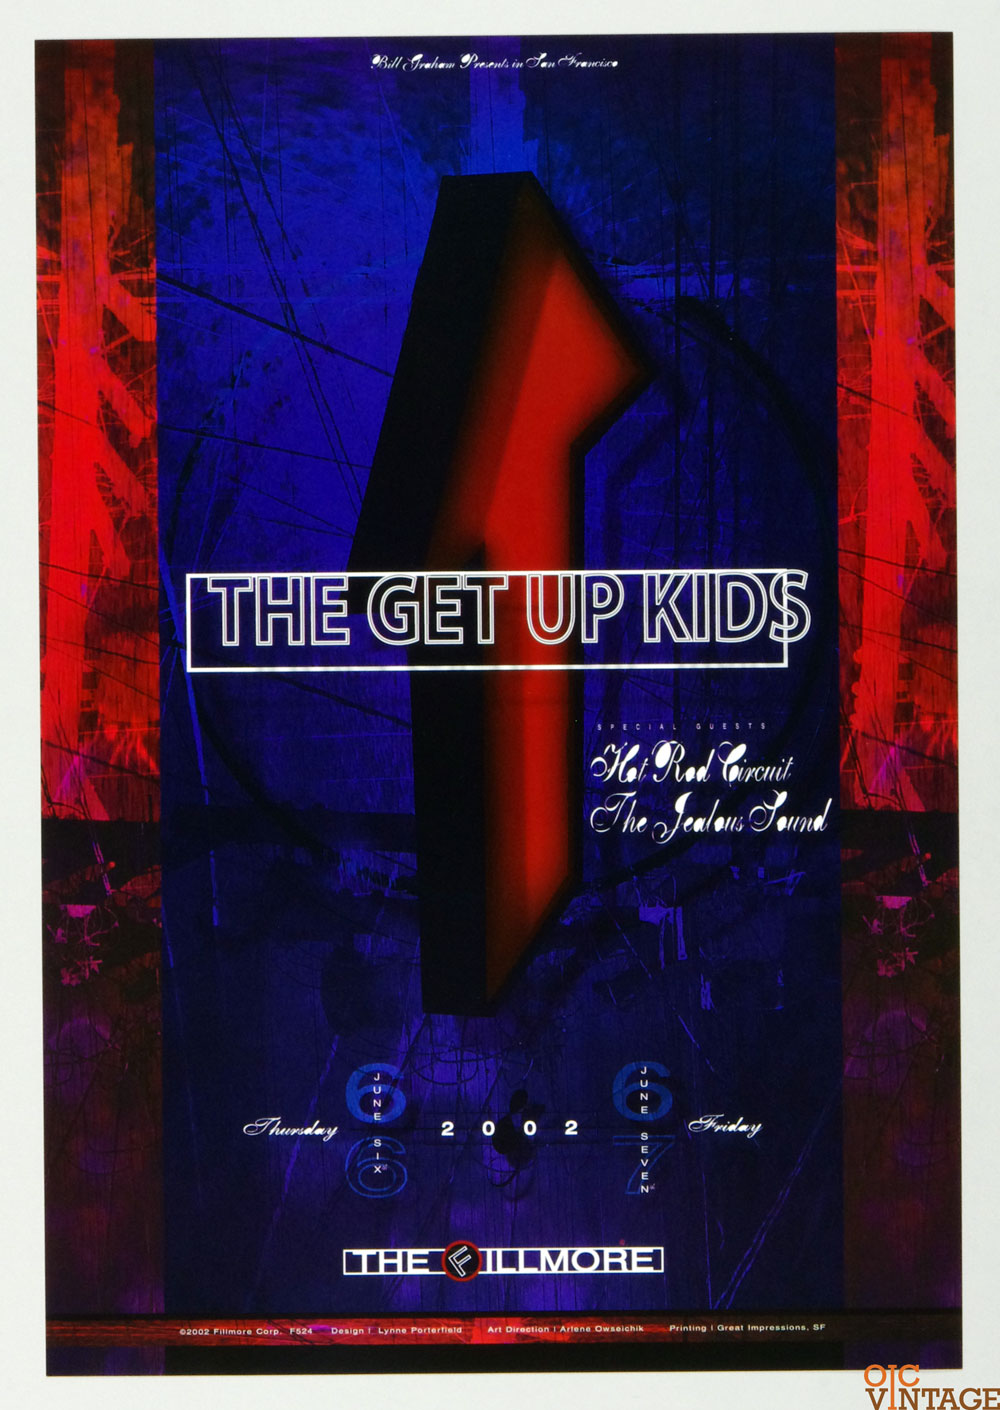 New Fillmore F524 Poster The Get Up Kids Hot Rod Circuit 2002 Jun 6